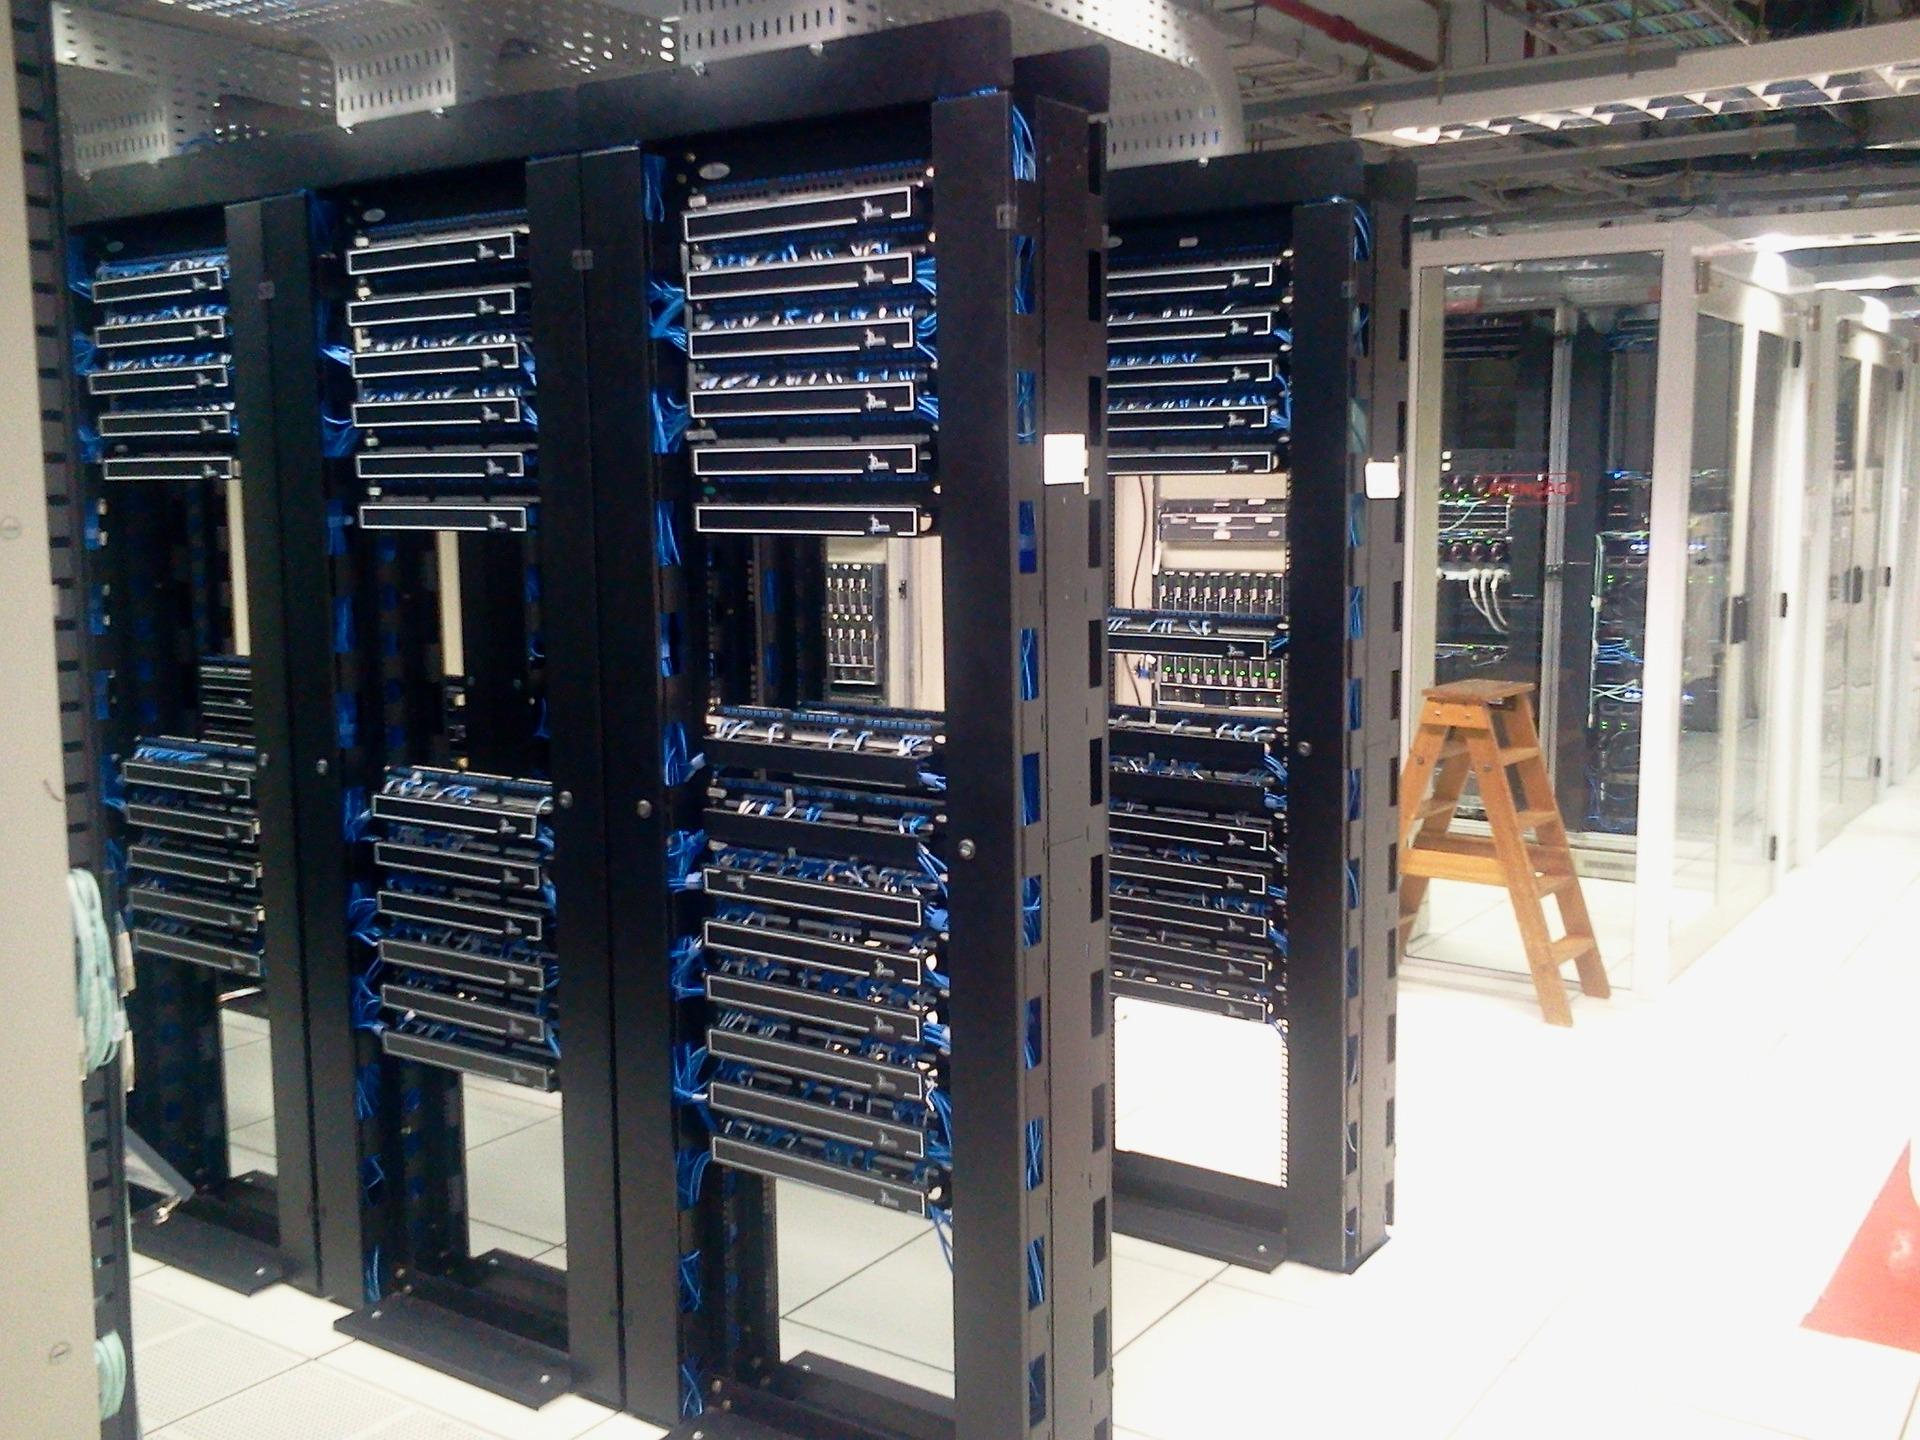 Datacenter environment monitoring and access control systems   HW-group.com